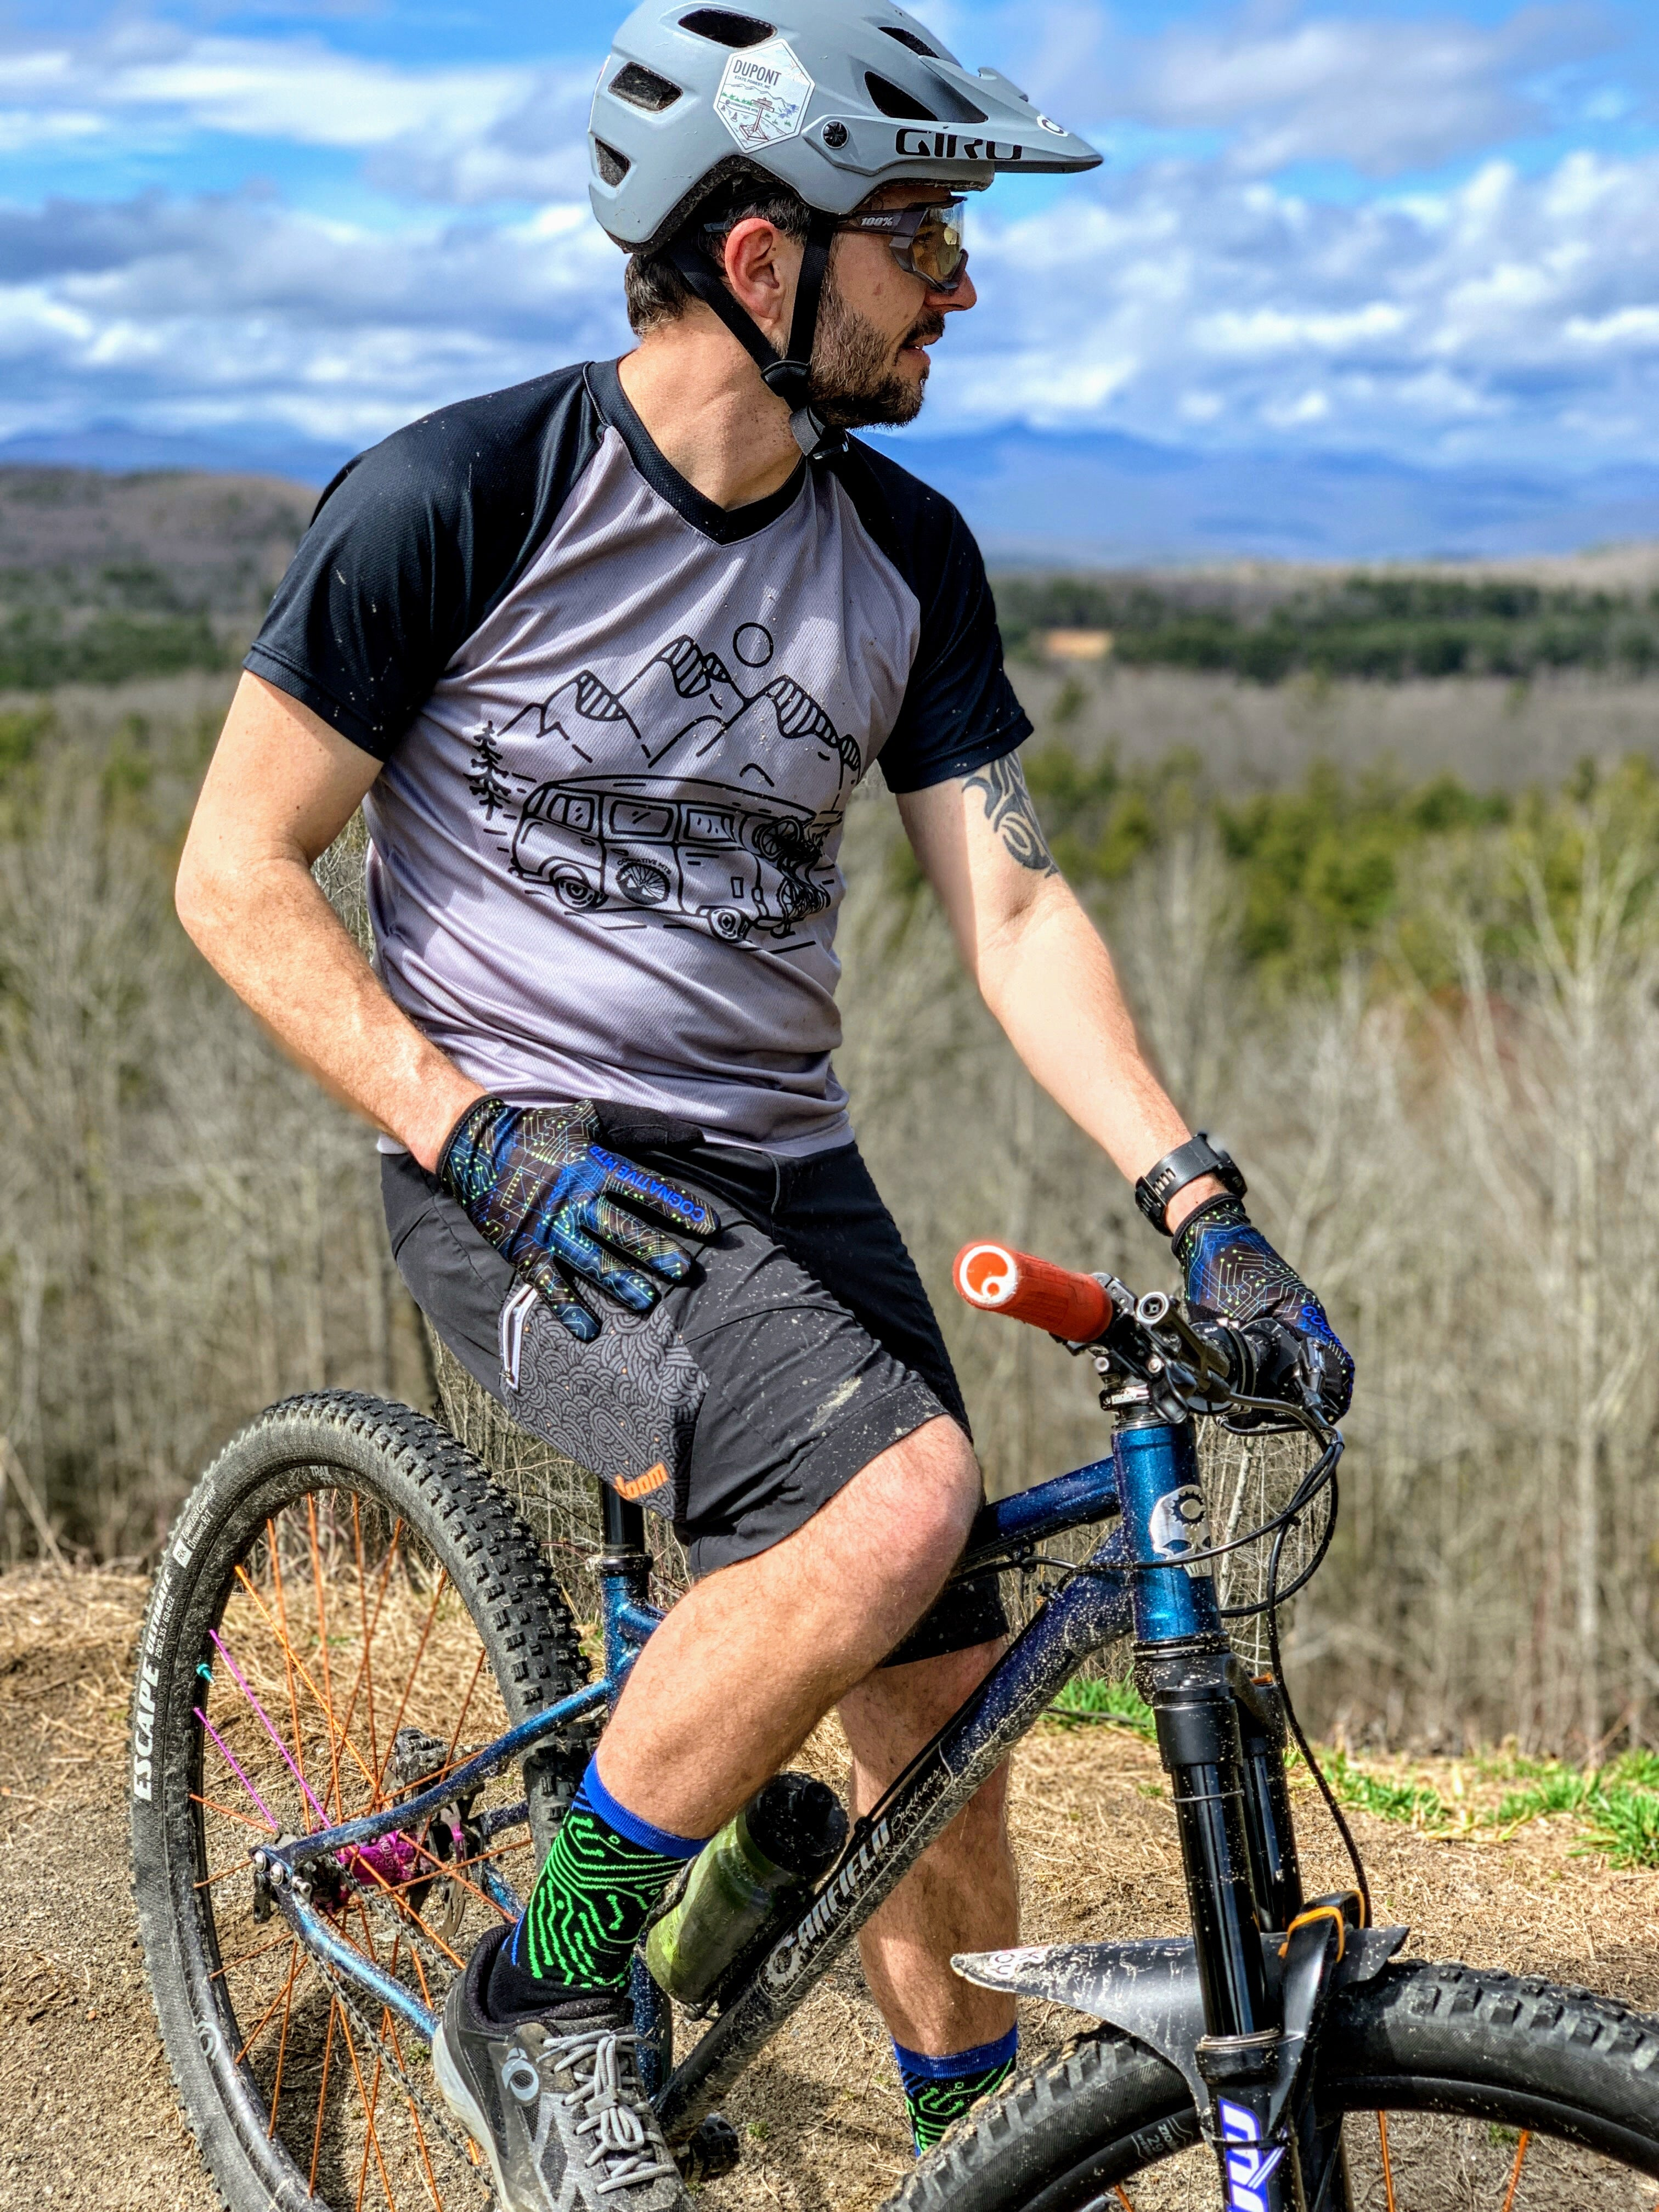 Cognative Motherboard Mountain Bike Socks in Dupont State Forest